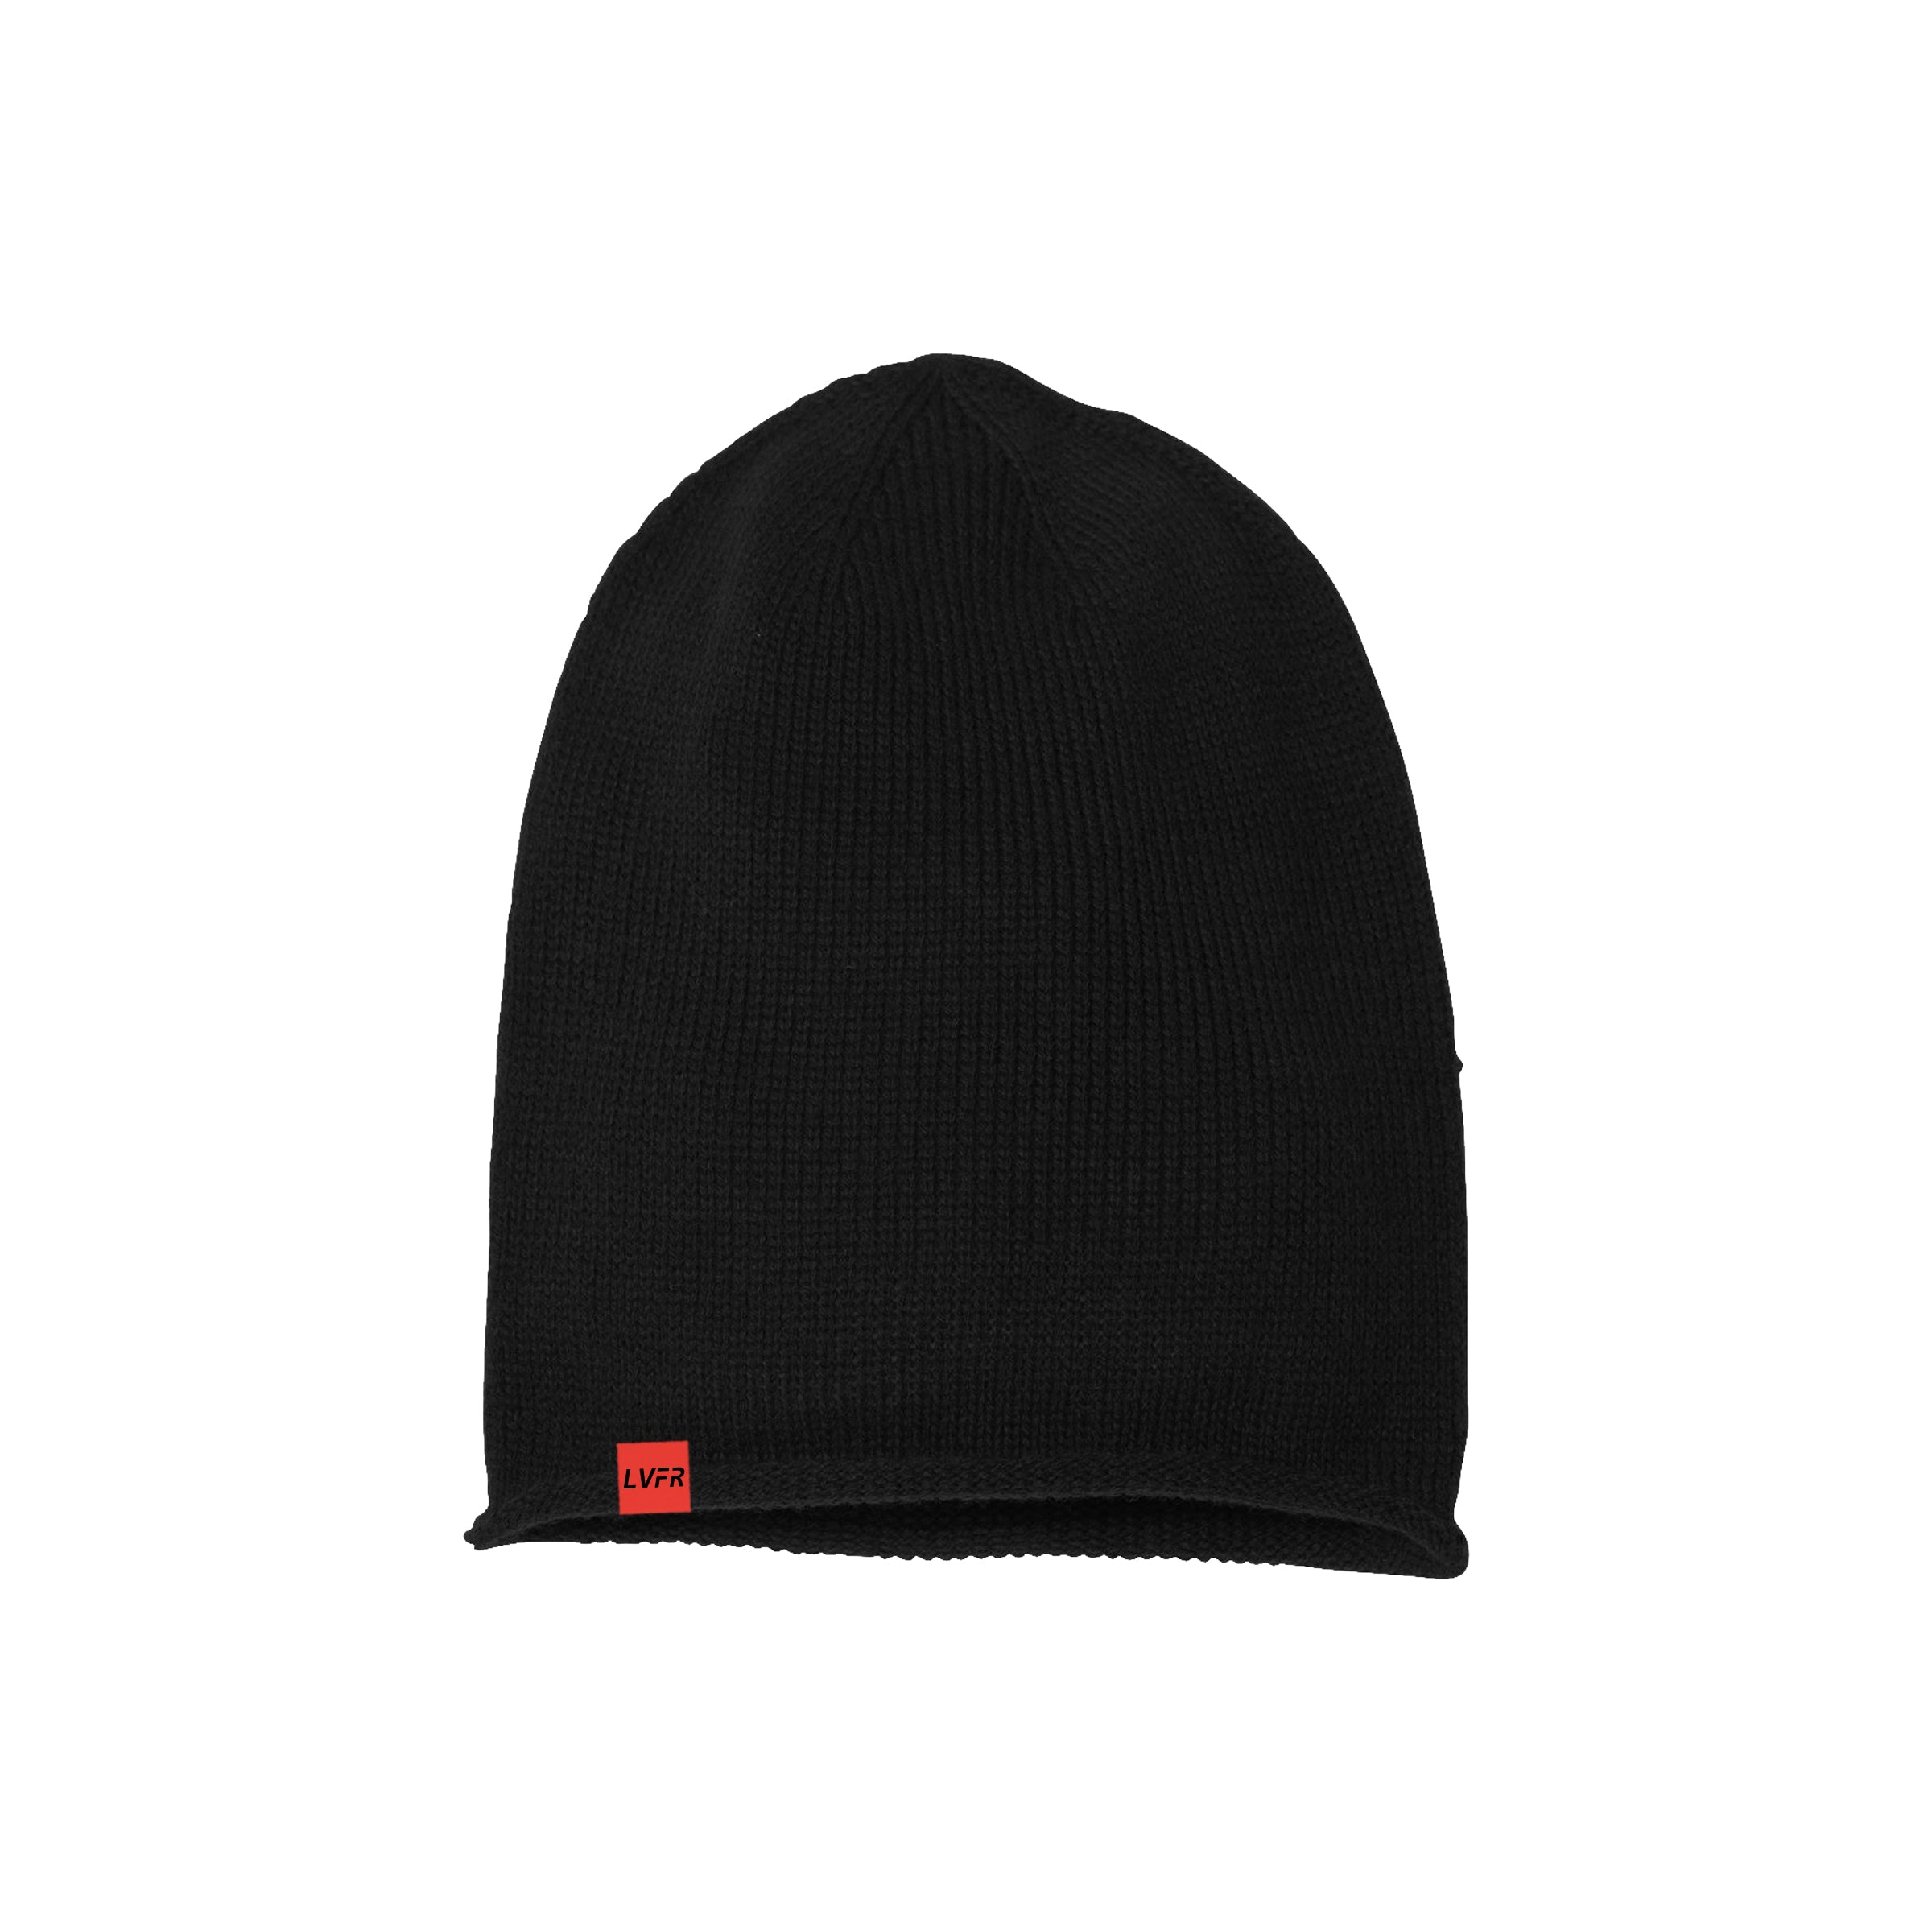 LVFR Oversized Beanie - Black – Live Free Industries 677fe669116